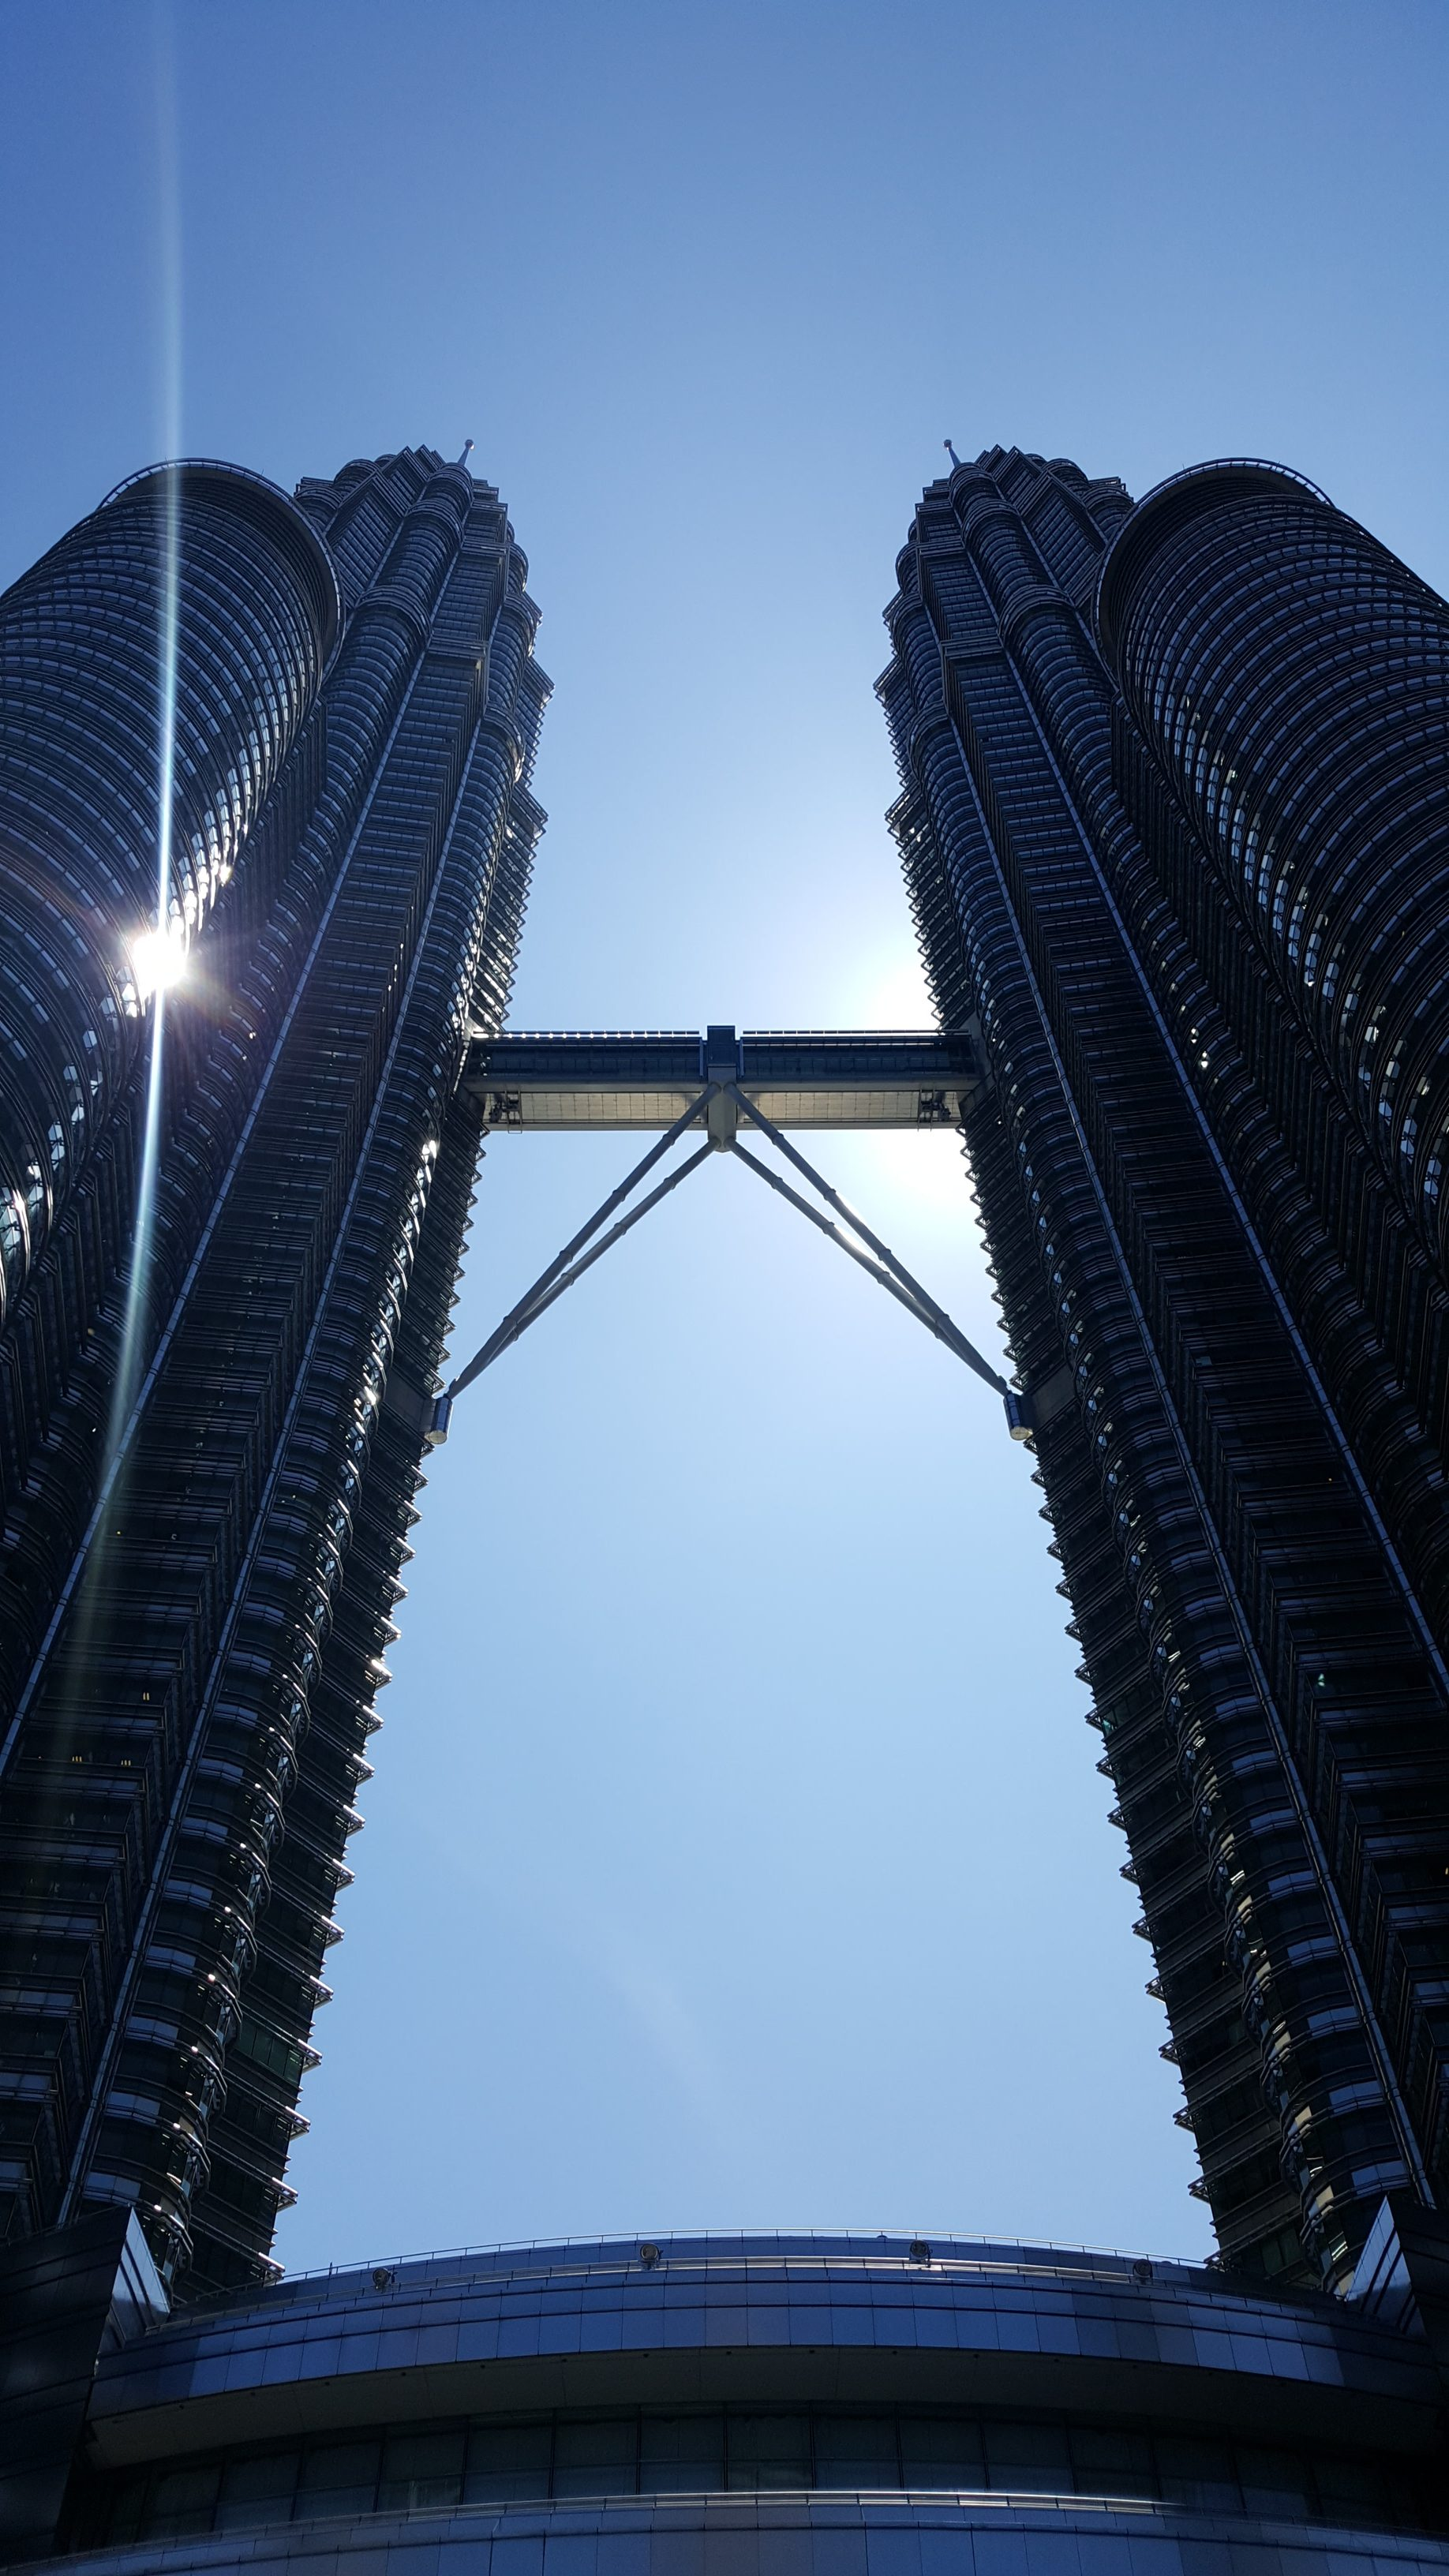 The Petronas towers, taken near midday with the sun reflecting off the glass. The photo is taken from the ground floor, looking up